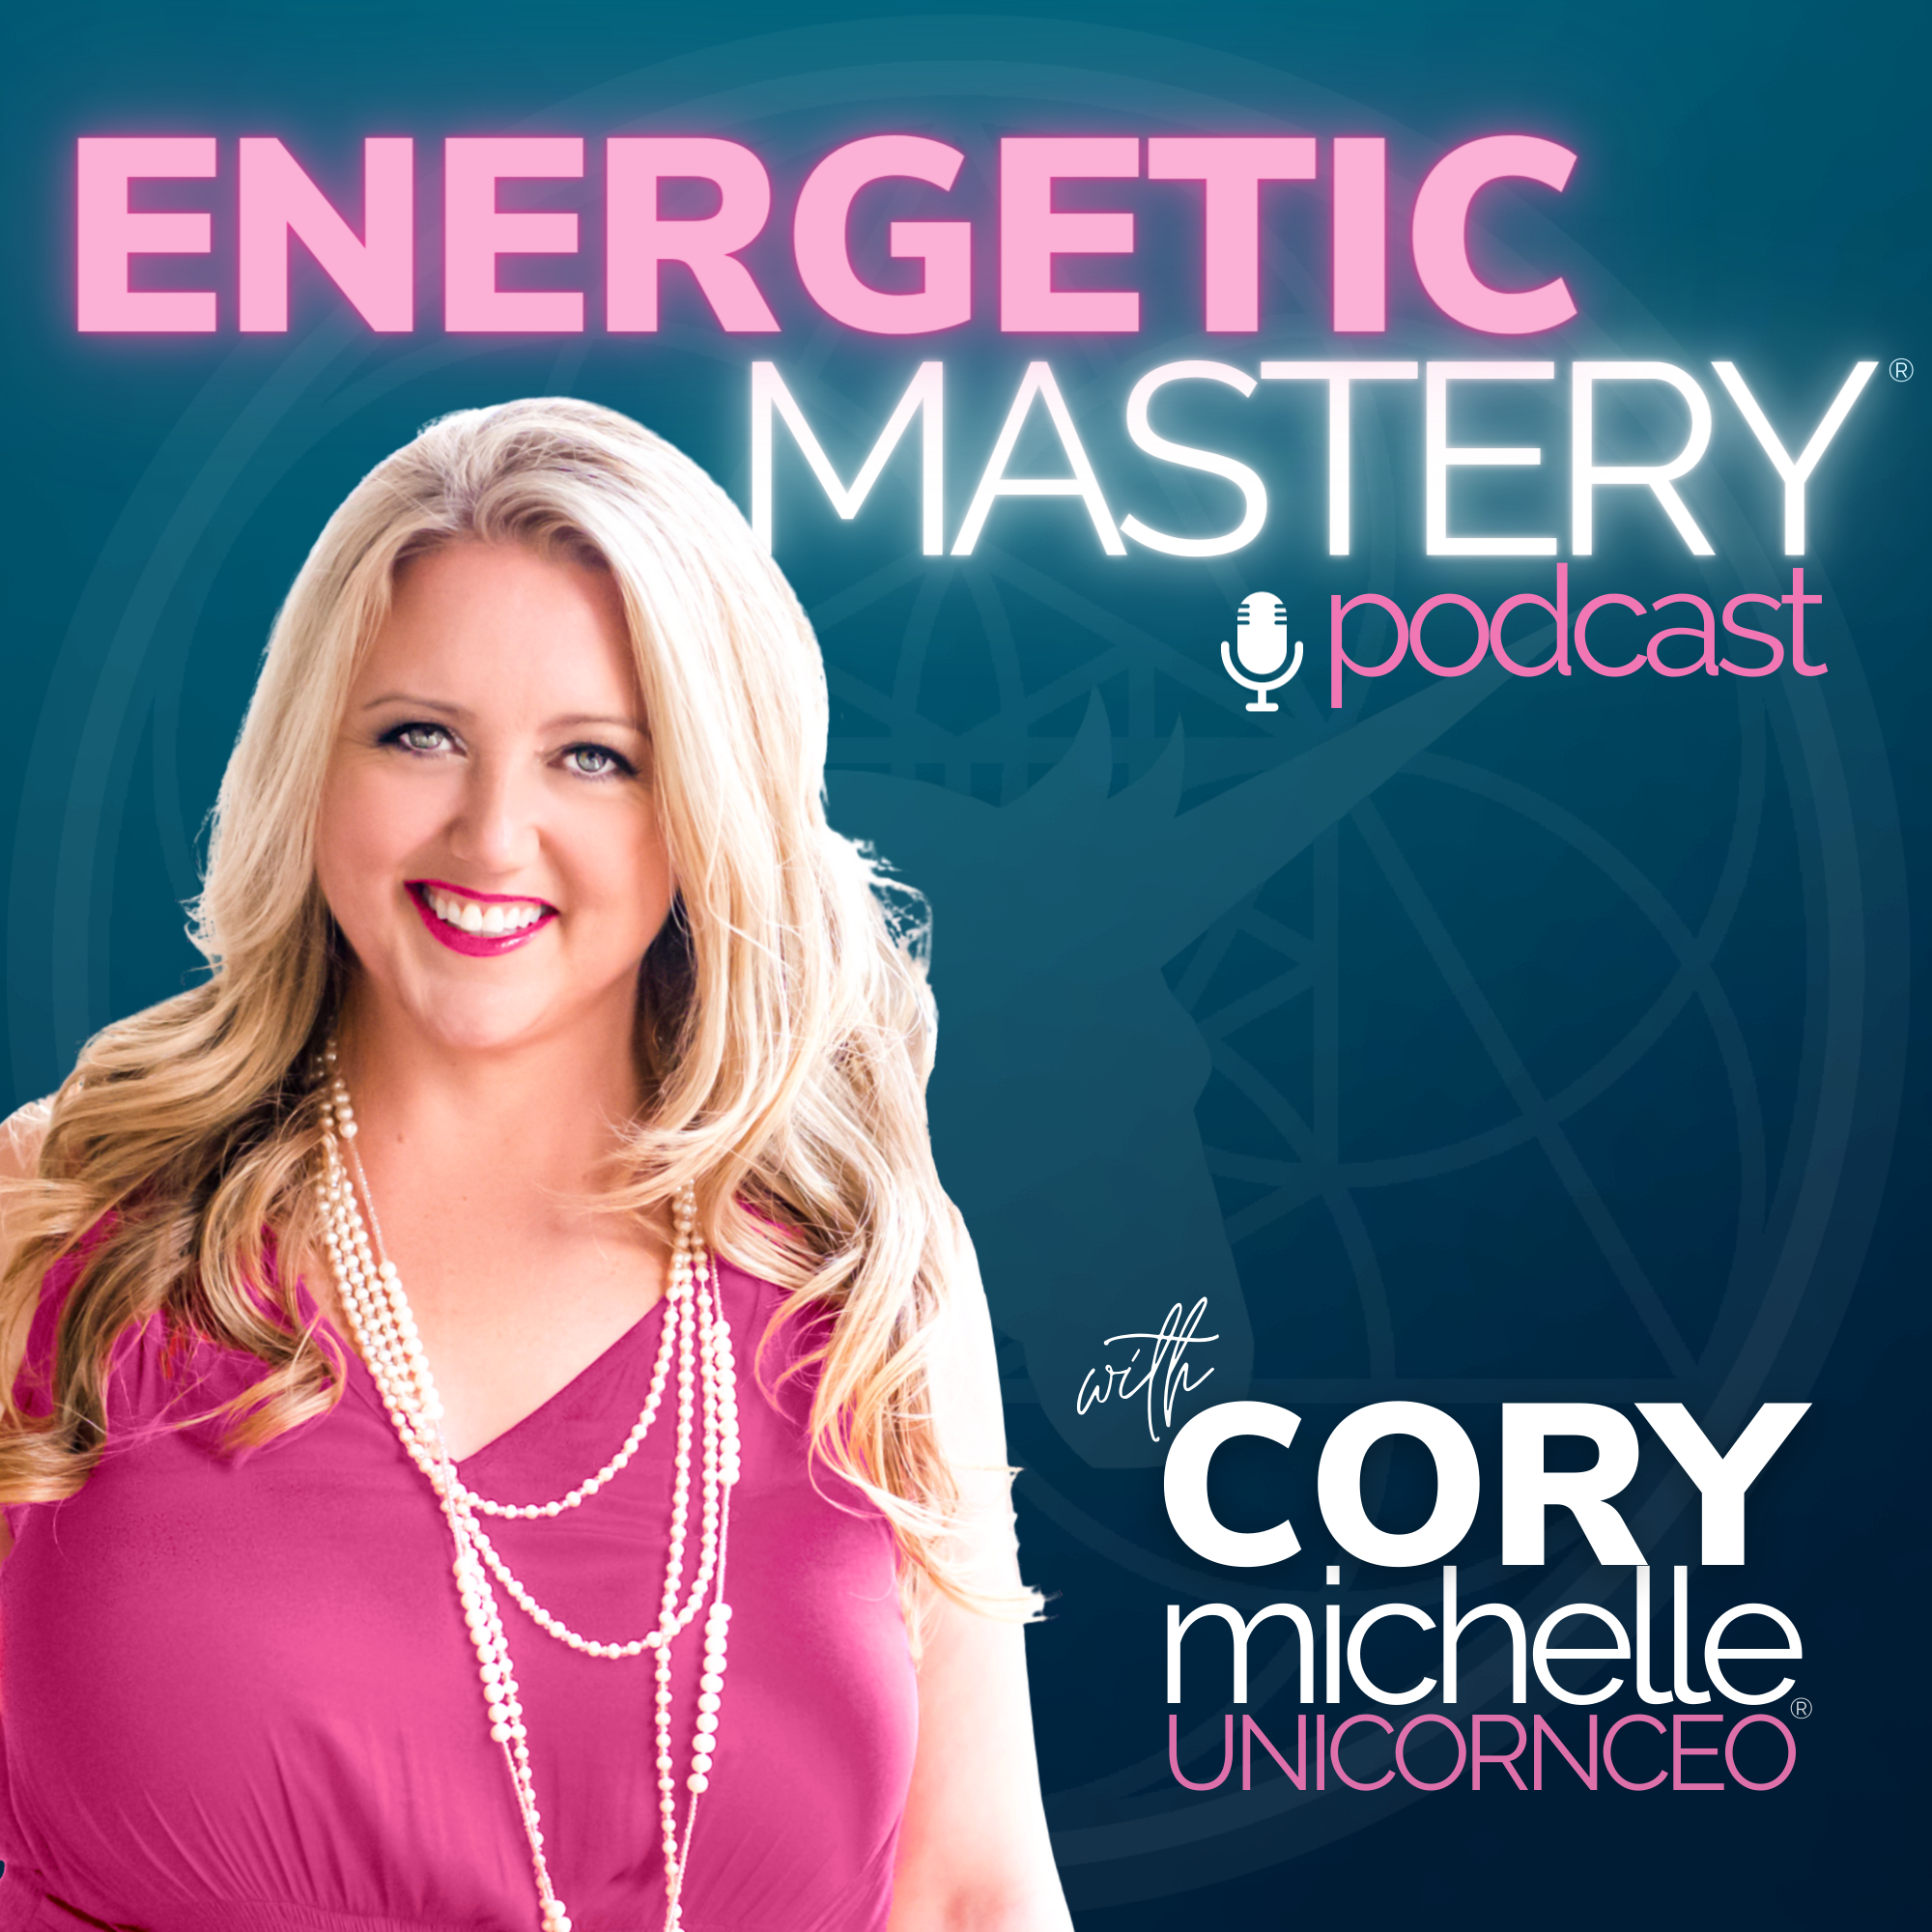 Energetic Mastery Podcast with Cory Michelle